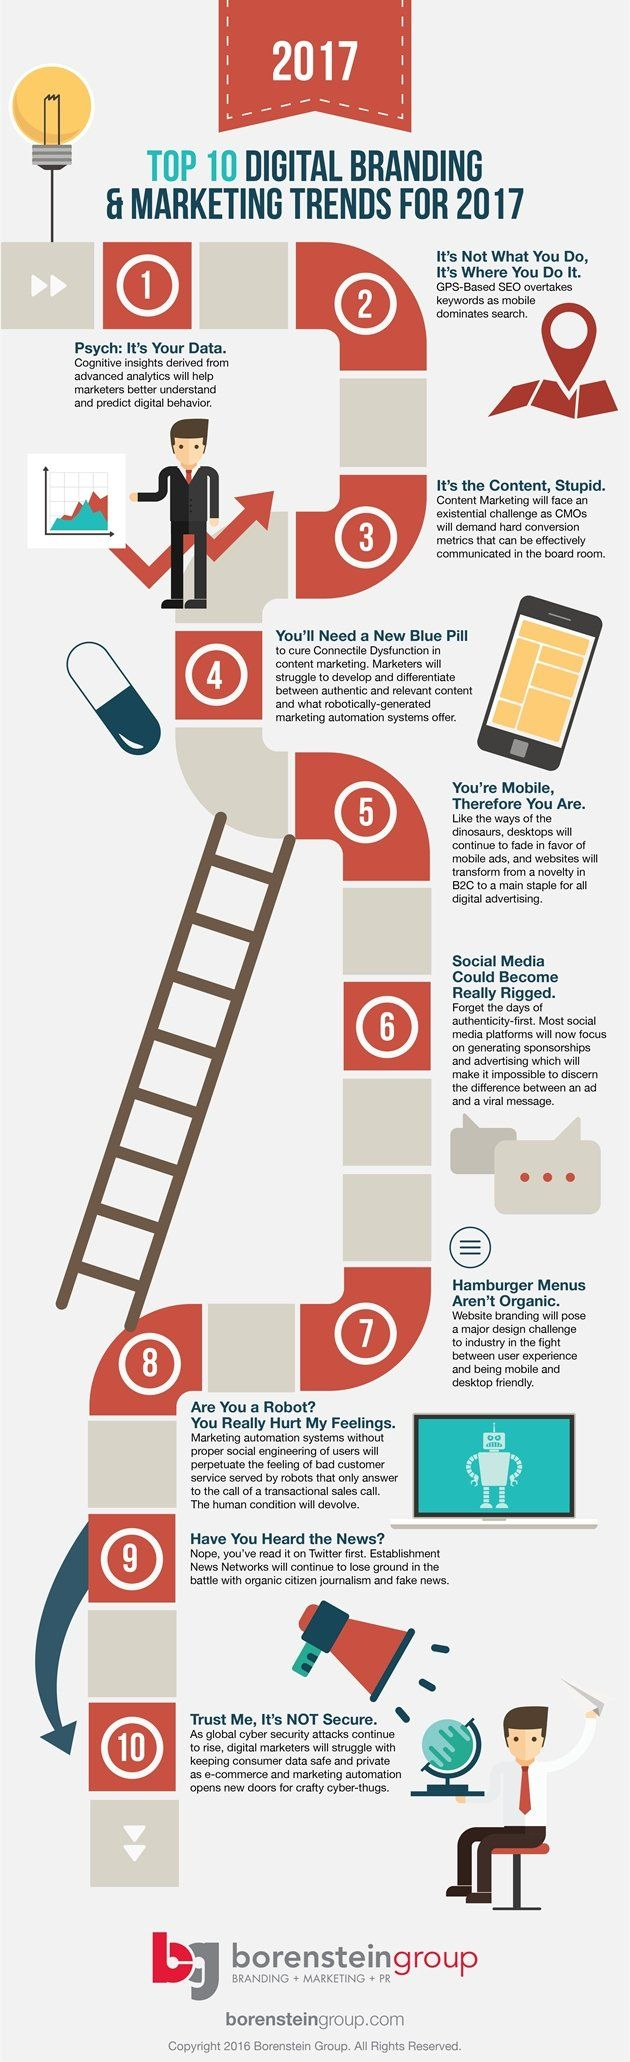 Marketing Strategy - 2017's Top 10 Digital Branding and Marketing Trends #Infographic #Infografía